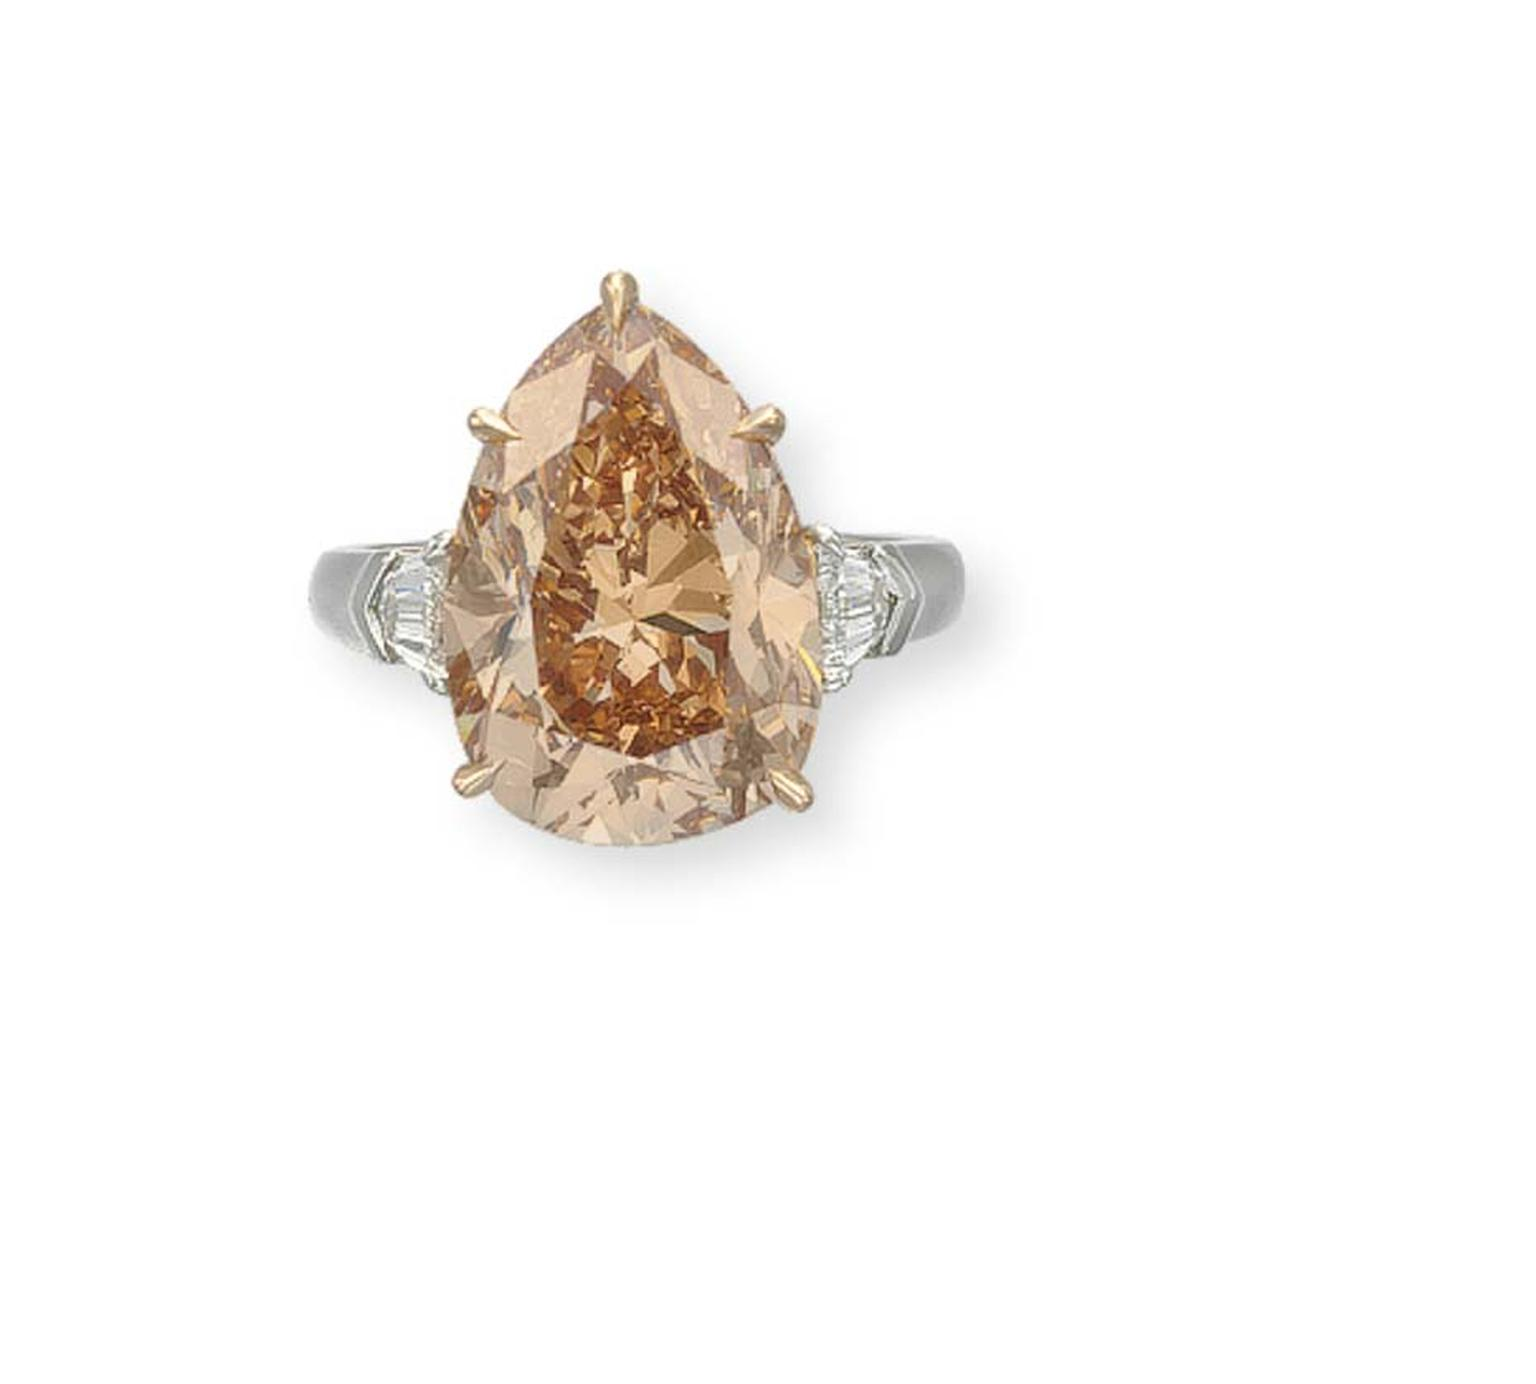 Christie's New York pear-shaped 9.73ct Fancy Brown-Pink Diamond ring with a pre-sale estimate of US$480,000-700,000 sold for a very respectable US$605,000.